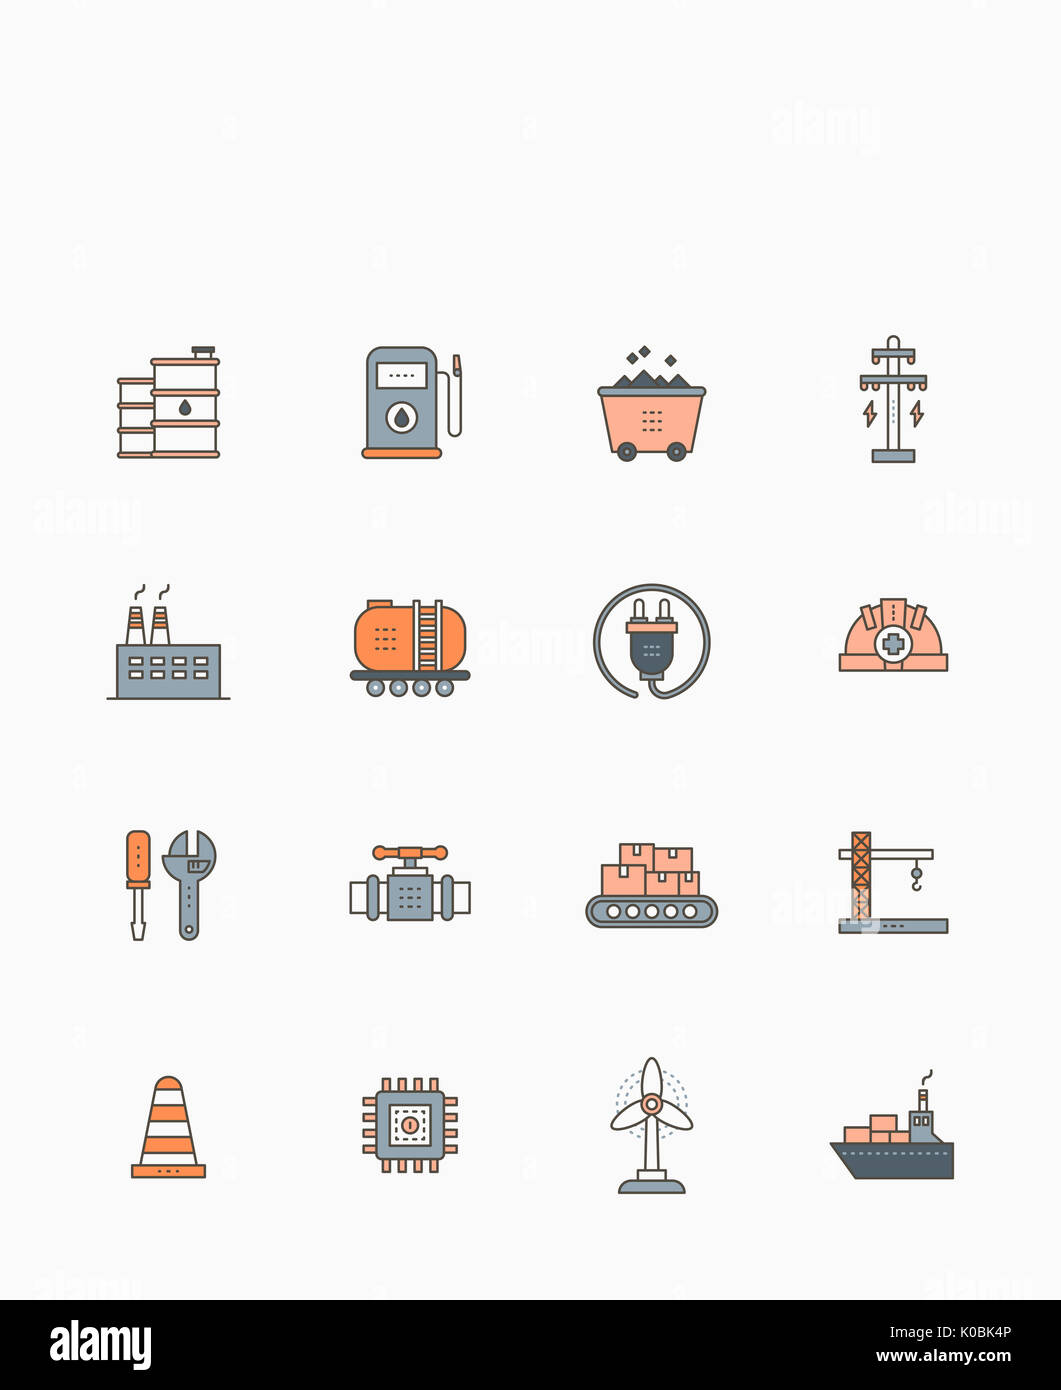 Set of icons related to industries - Stock Image